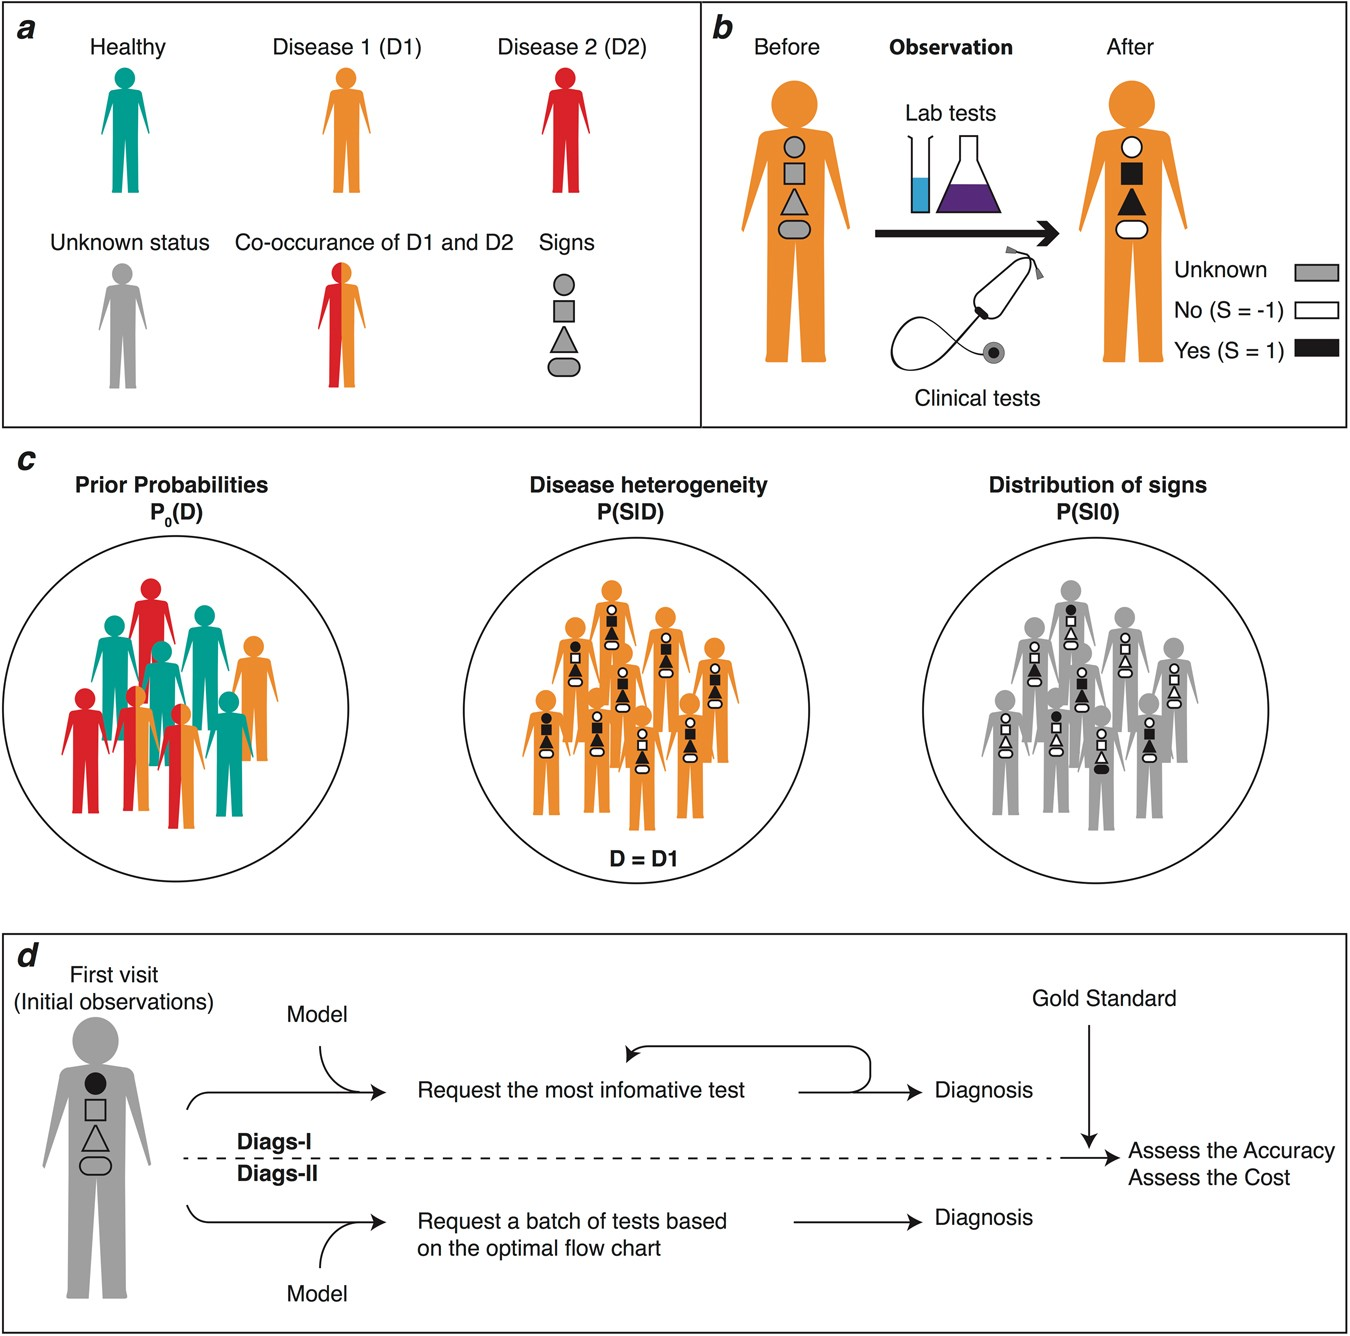 The Value Of Correct Diagnosis >> Uncovering Hidden Disease Patterns By Simulating Clinical Diagnostic